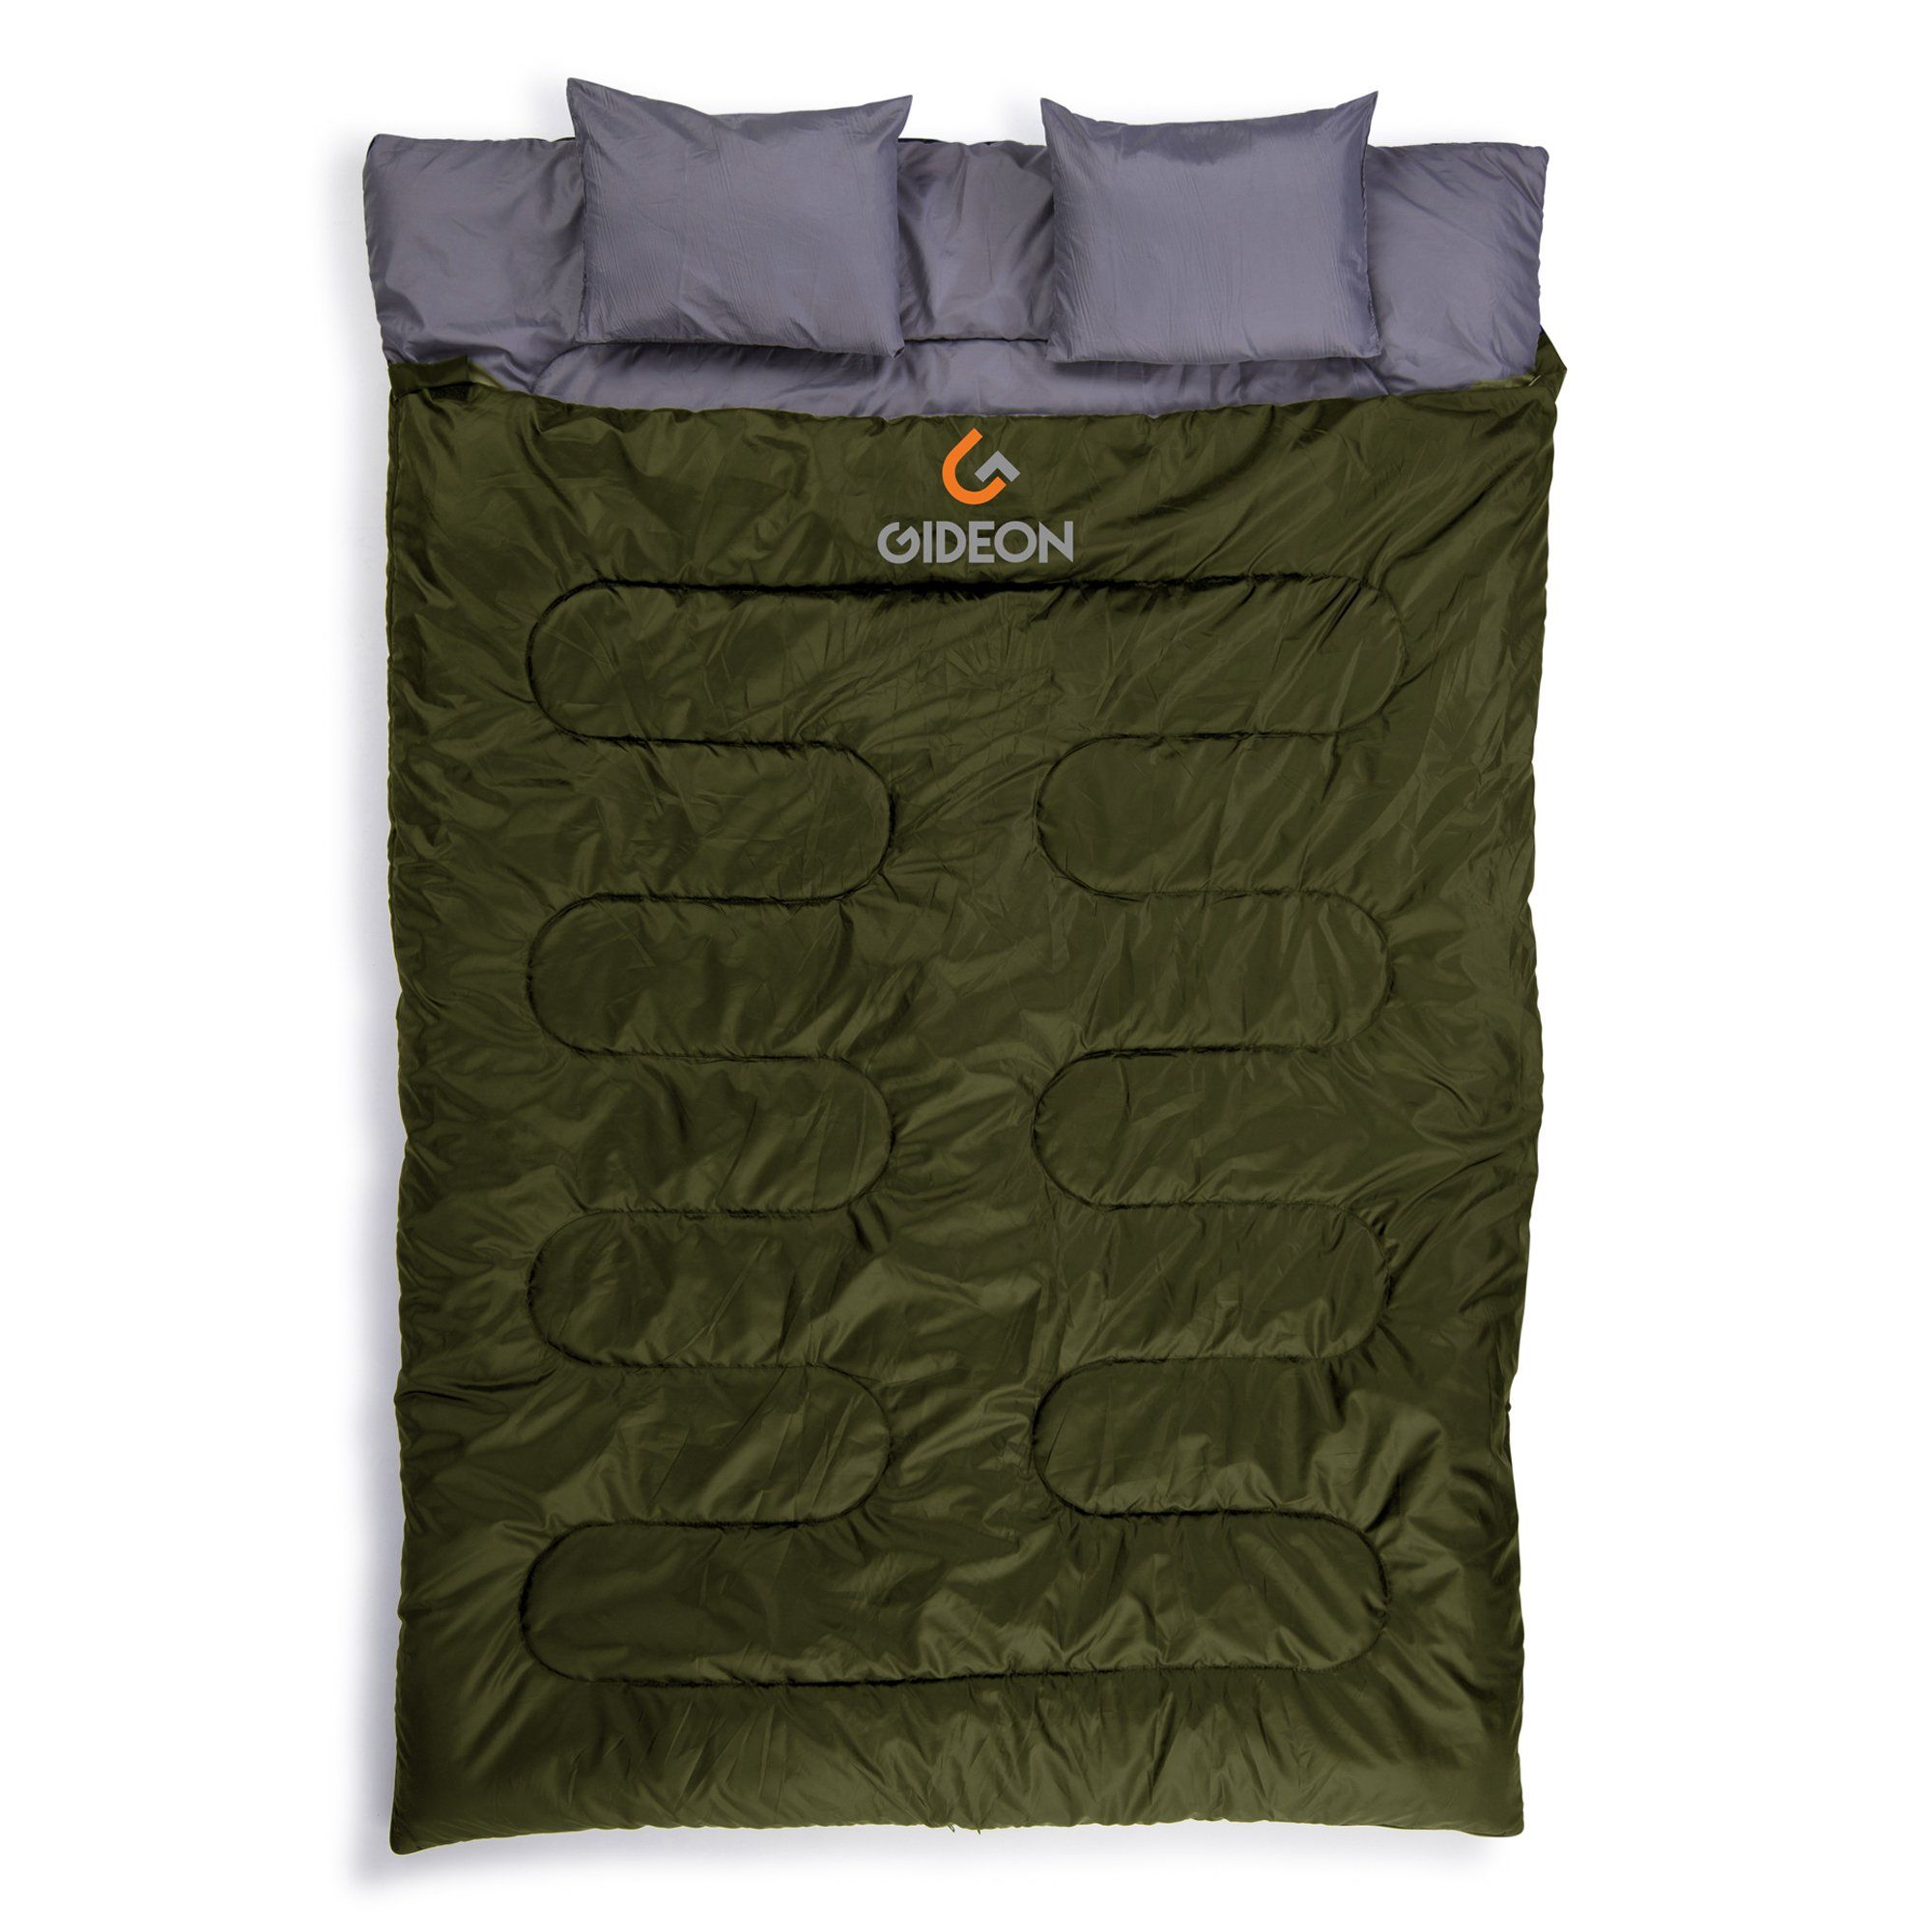 Gideon Extreme Waterproof Backng Double Sleeping Bag With 2 Pillows Amazingly Lightweight Compact